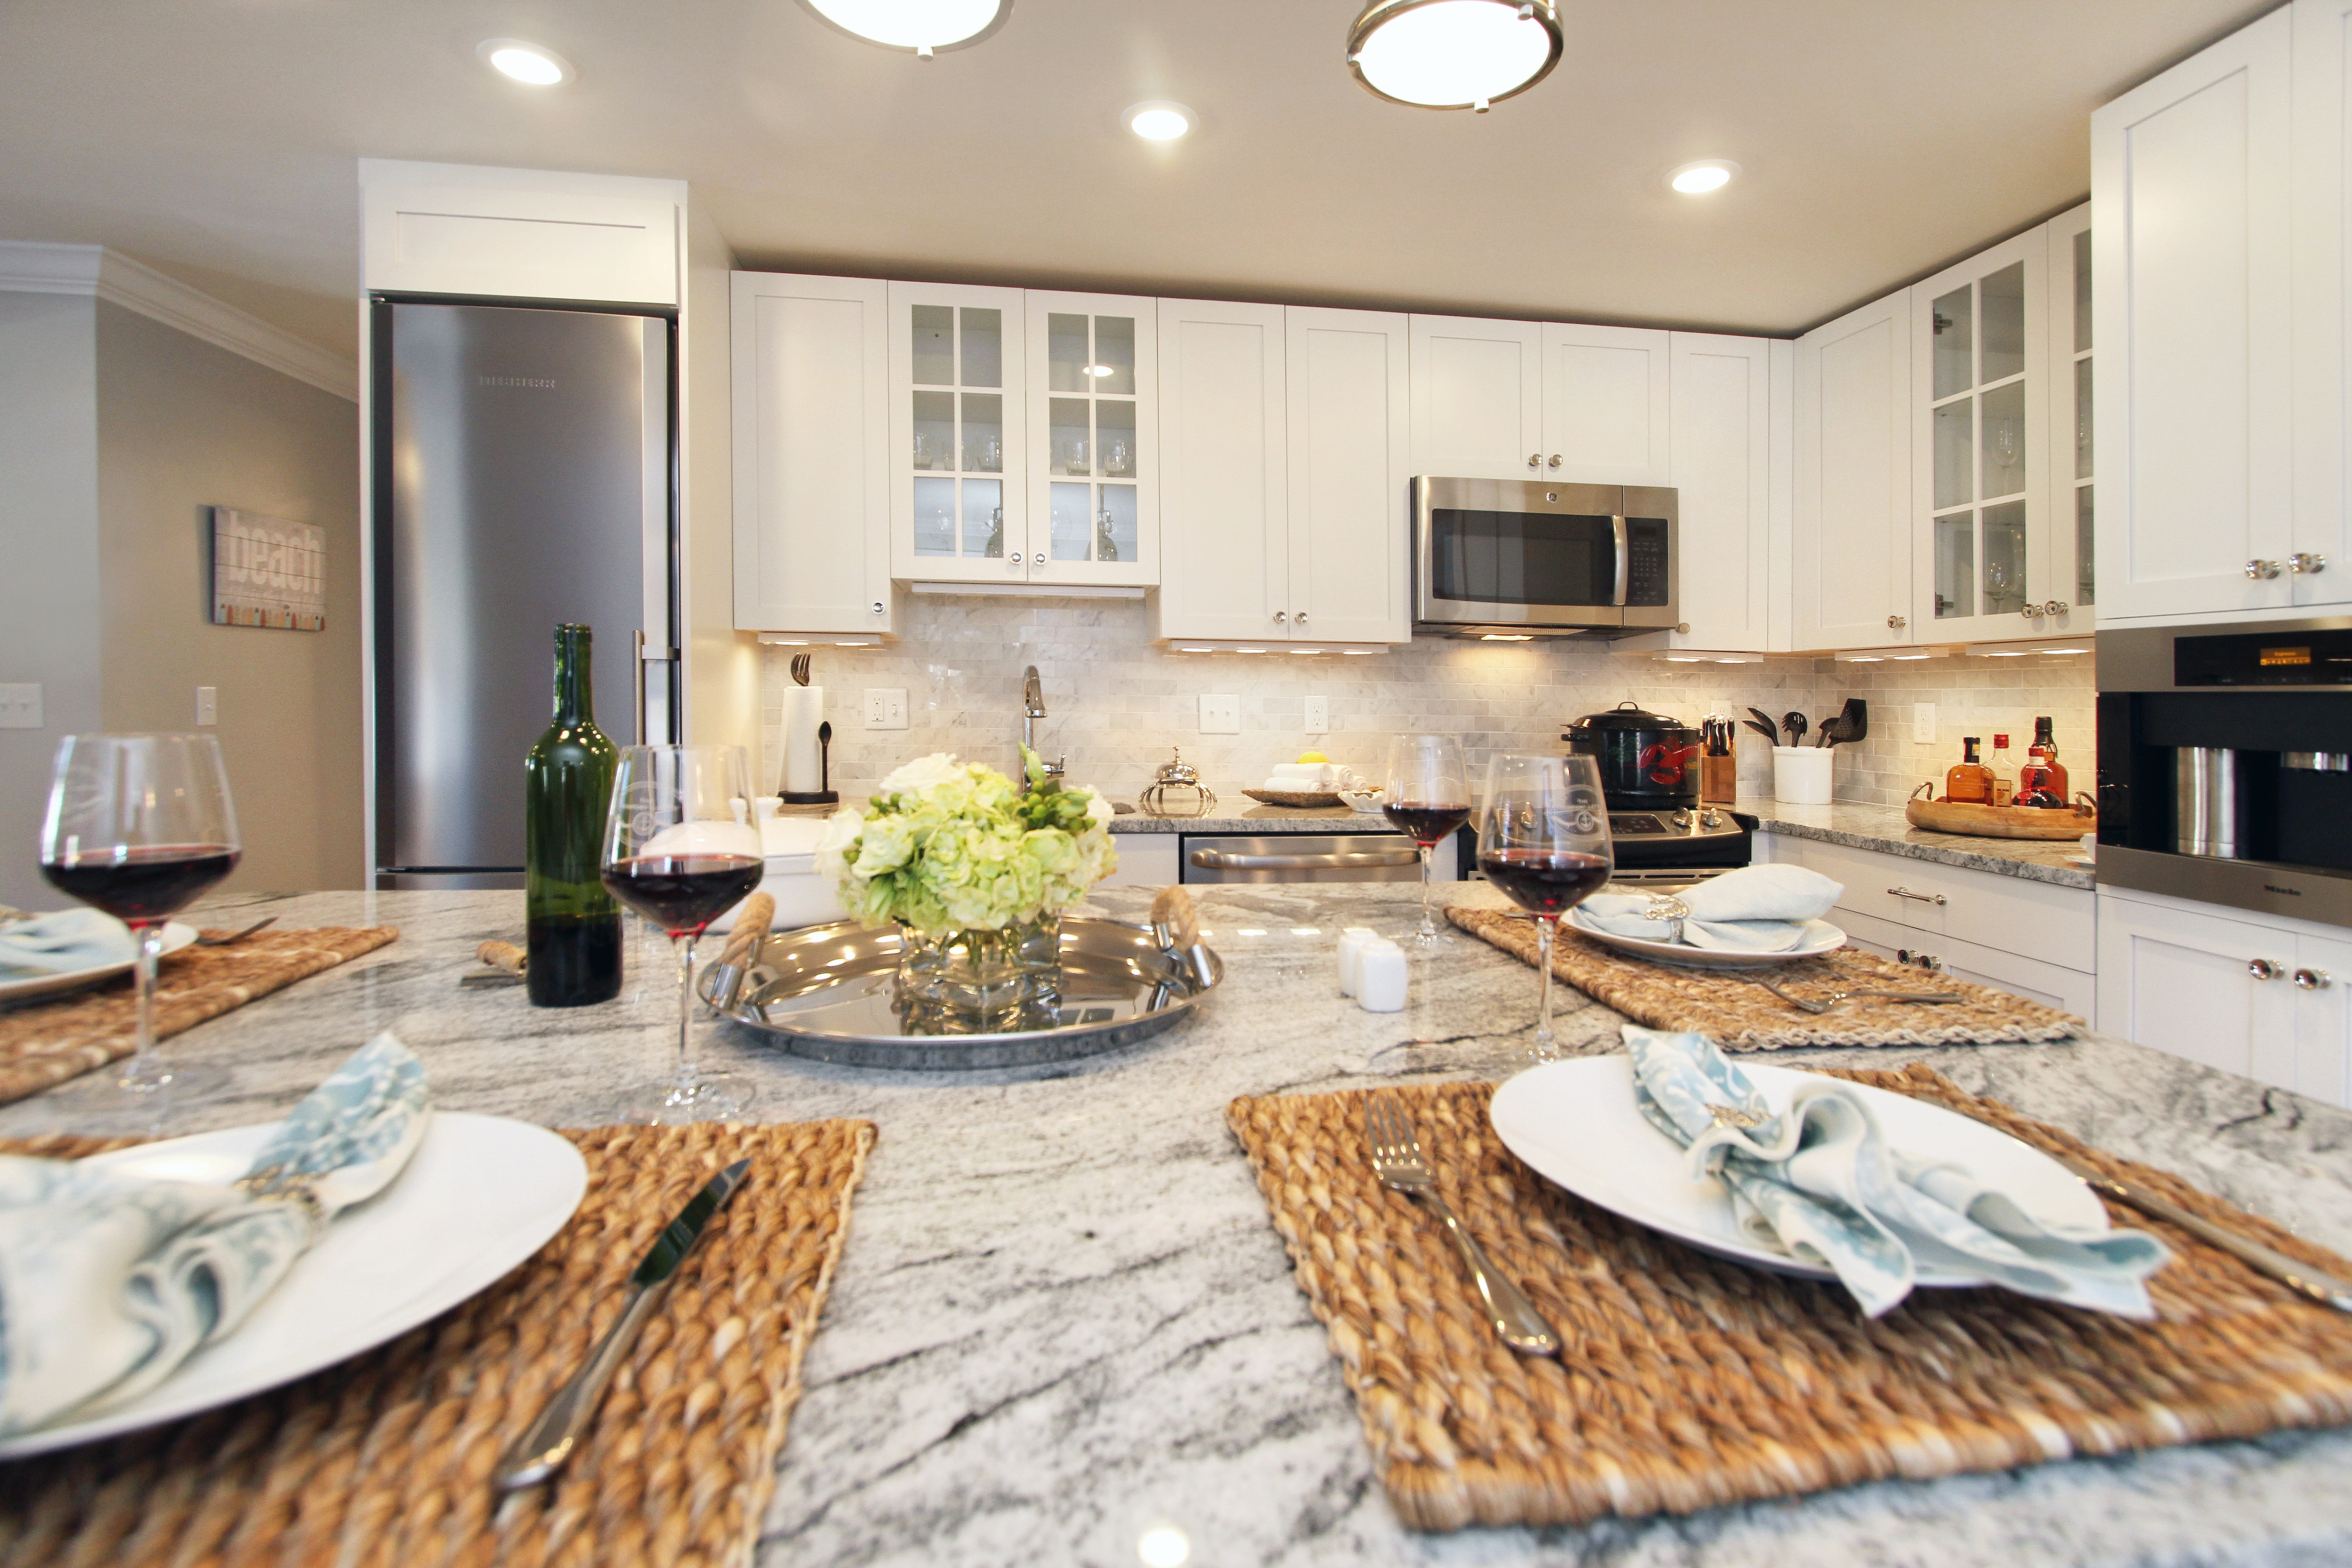 Property Image 2 - Coastal Inspired Condo with Upscale Kitchen